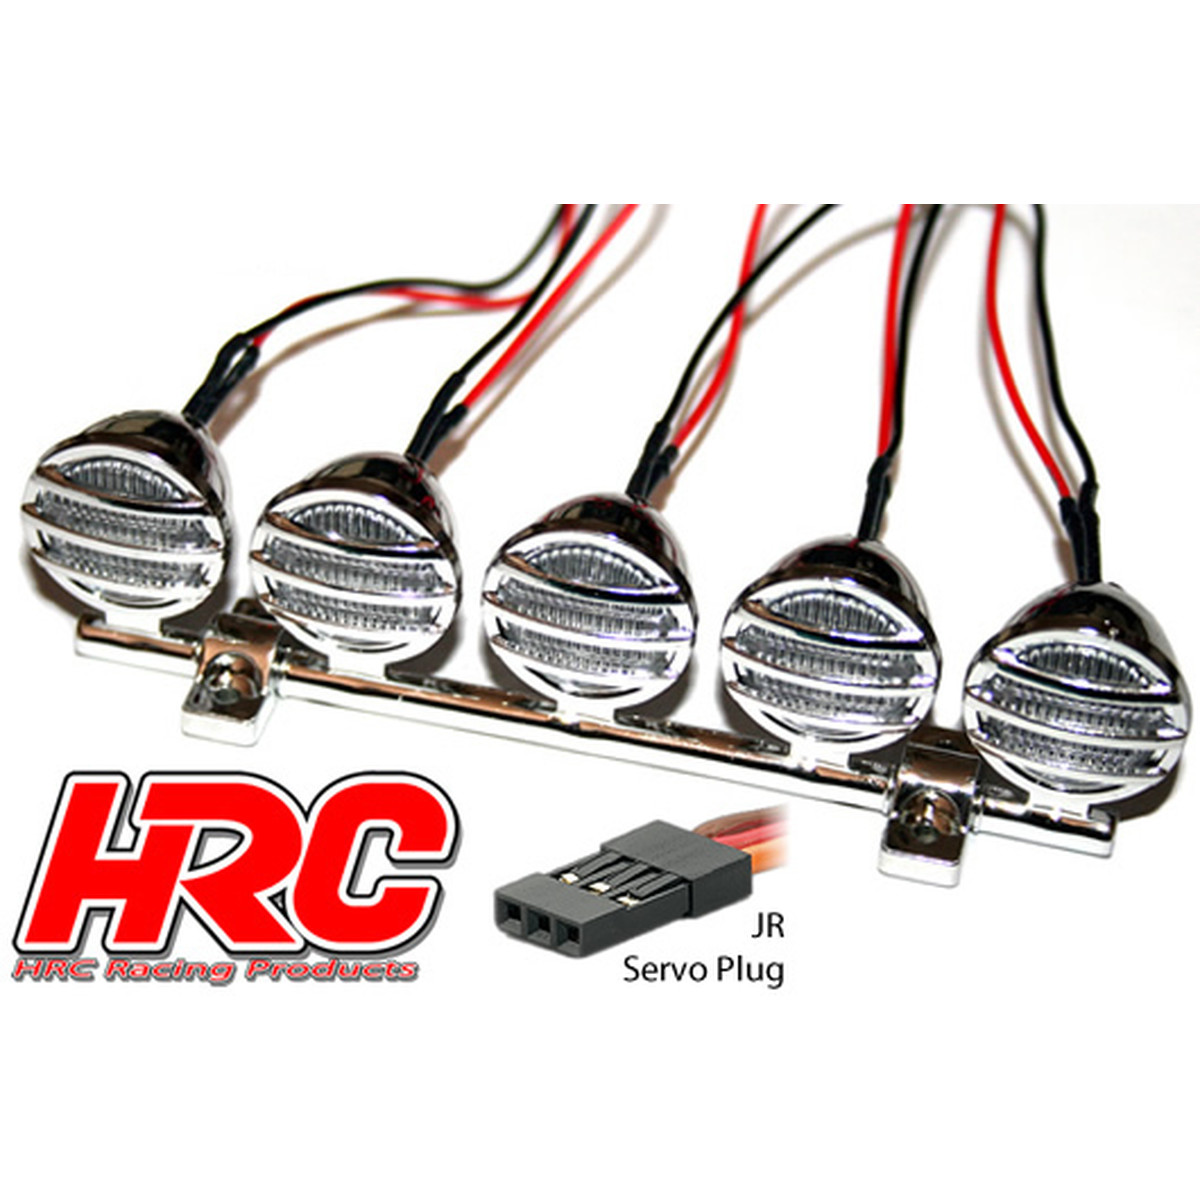 Hrc Racing Light Kit 1 10 Or Monster Truck Led Jr Plug Roof O Wiring Schematic For The Plugs Of Four Major Servo Manufacturers